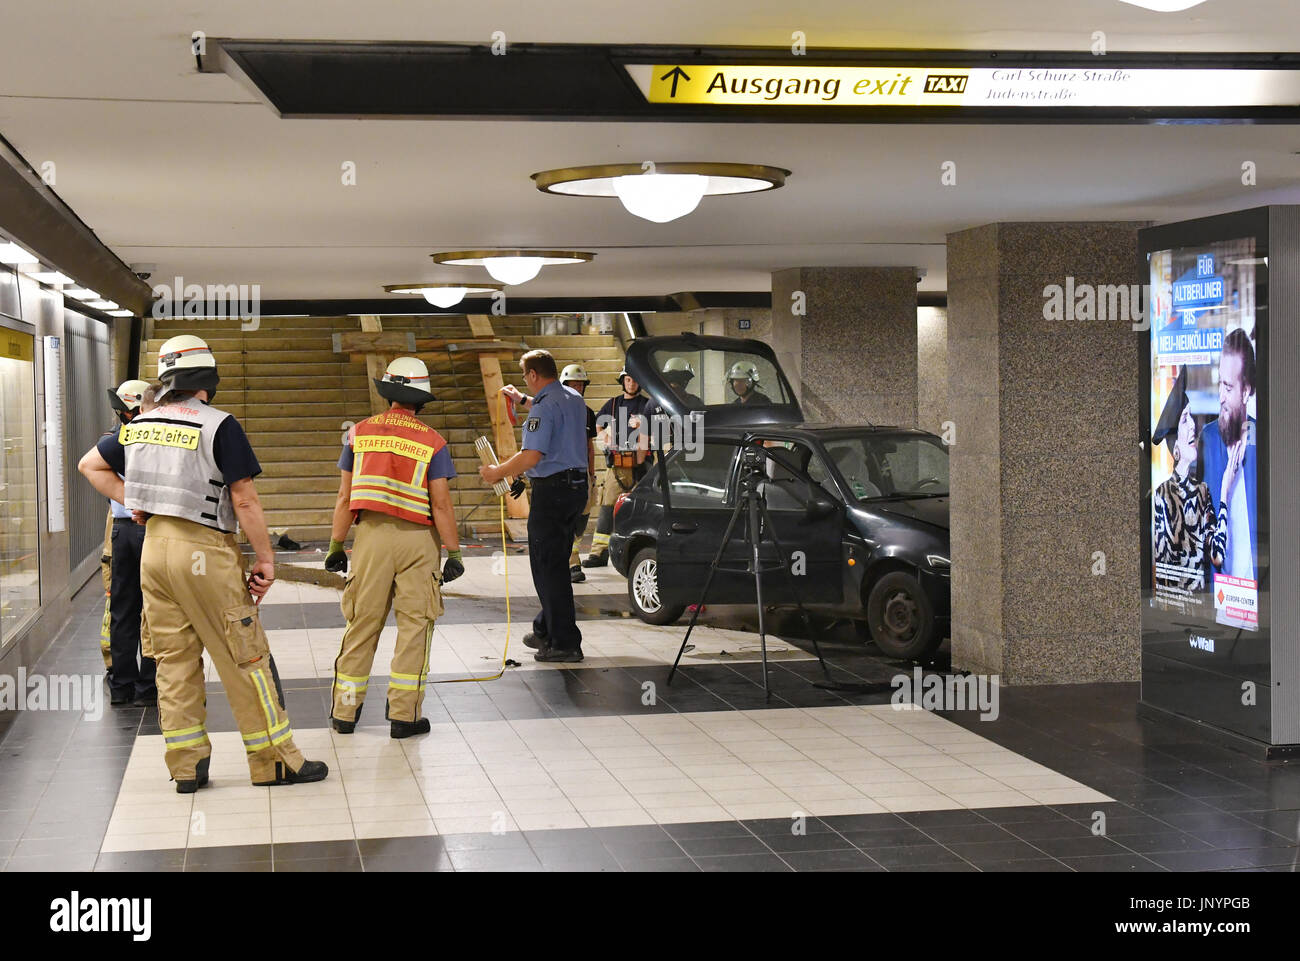 Berlin, Germany. 30th July, 2017. A car can be seen in the underground station Rathaus Spandau in Berlin, Germany, 30 July 2017. After a car chase with the police the driver of the Fiesta drove down the stairs to the tracks. The car appeared conspicuous to the police because there had been a search warrant for the number plates of the vehicle. The driver has been arrested. Photo: Paul Zinken/dpa/Alamy Live News - Stock Image